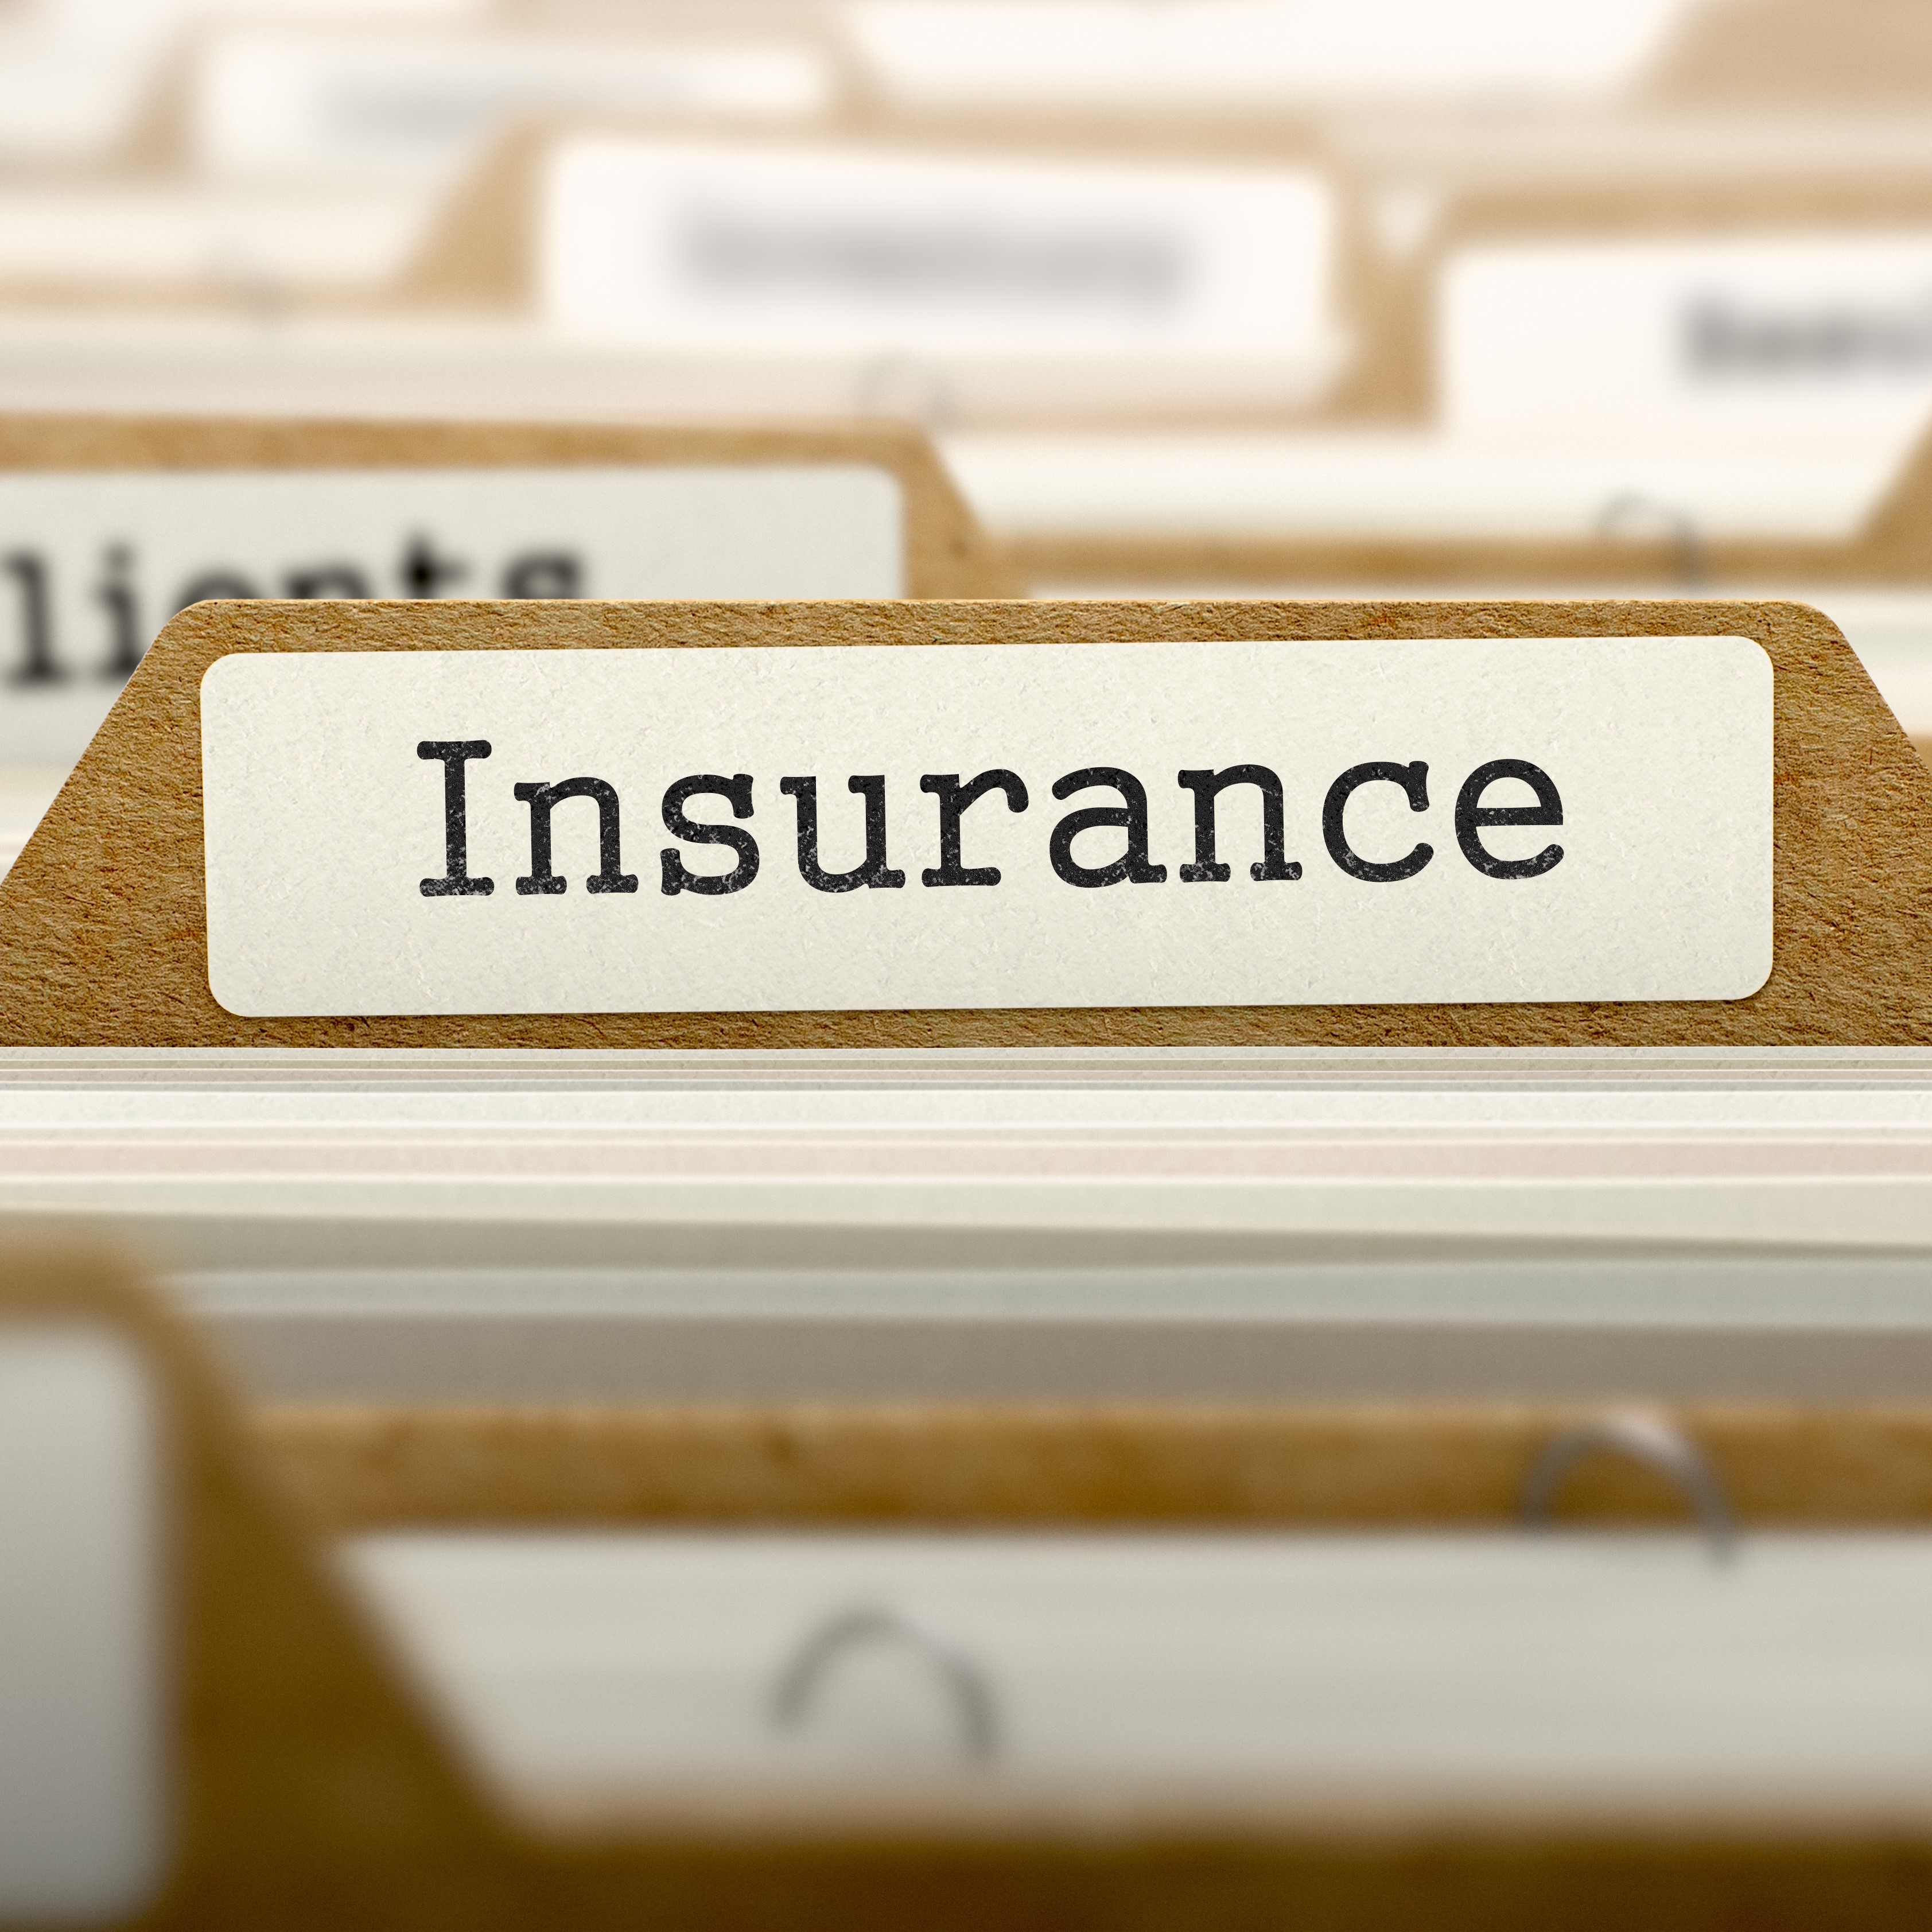 As you would expect from a reputable company, B4M Group holds full indemnity insurance cover